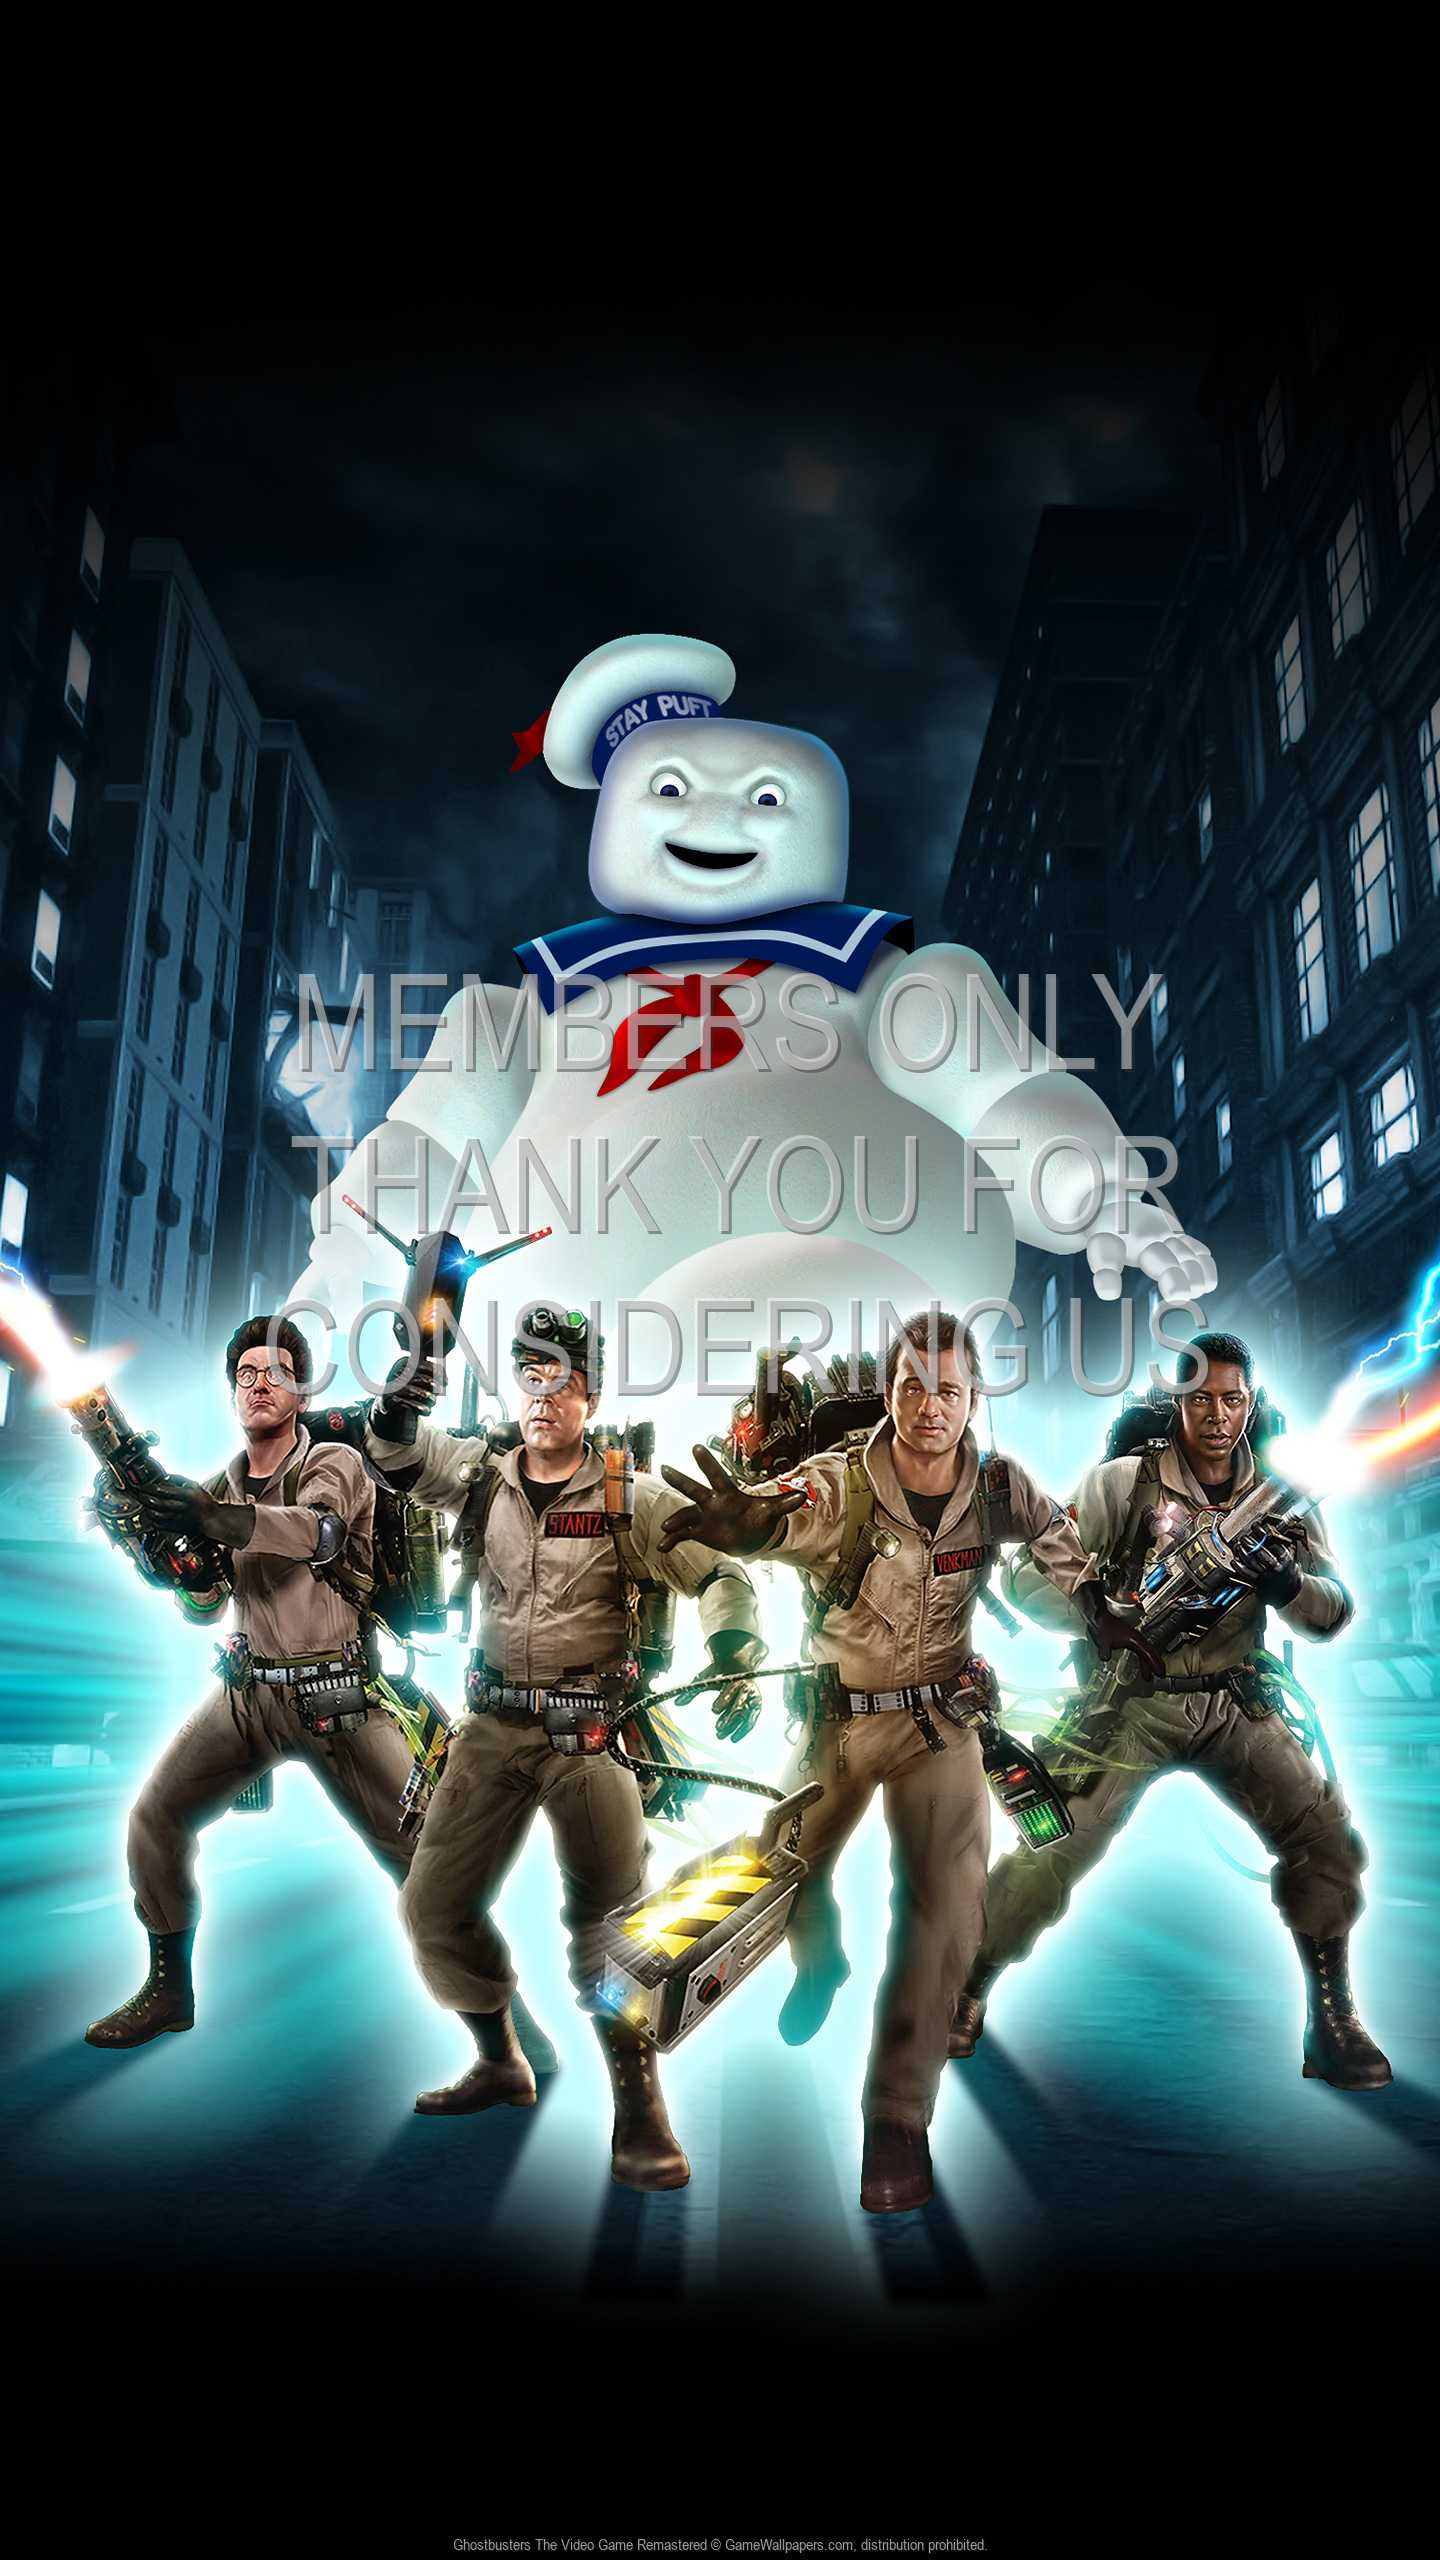 Ghostbusters: The Video Game Remastered 1440p Vertical Handy Hintergrundbild 01